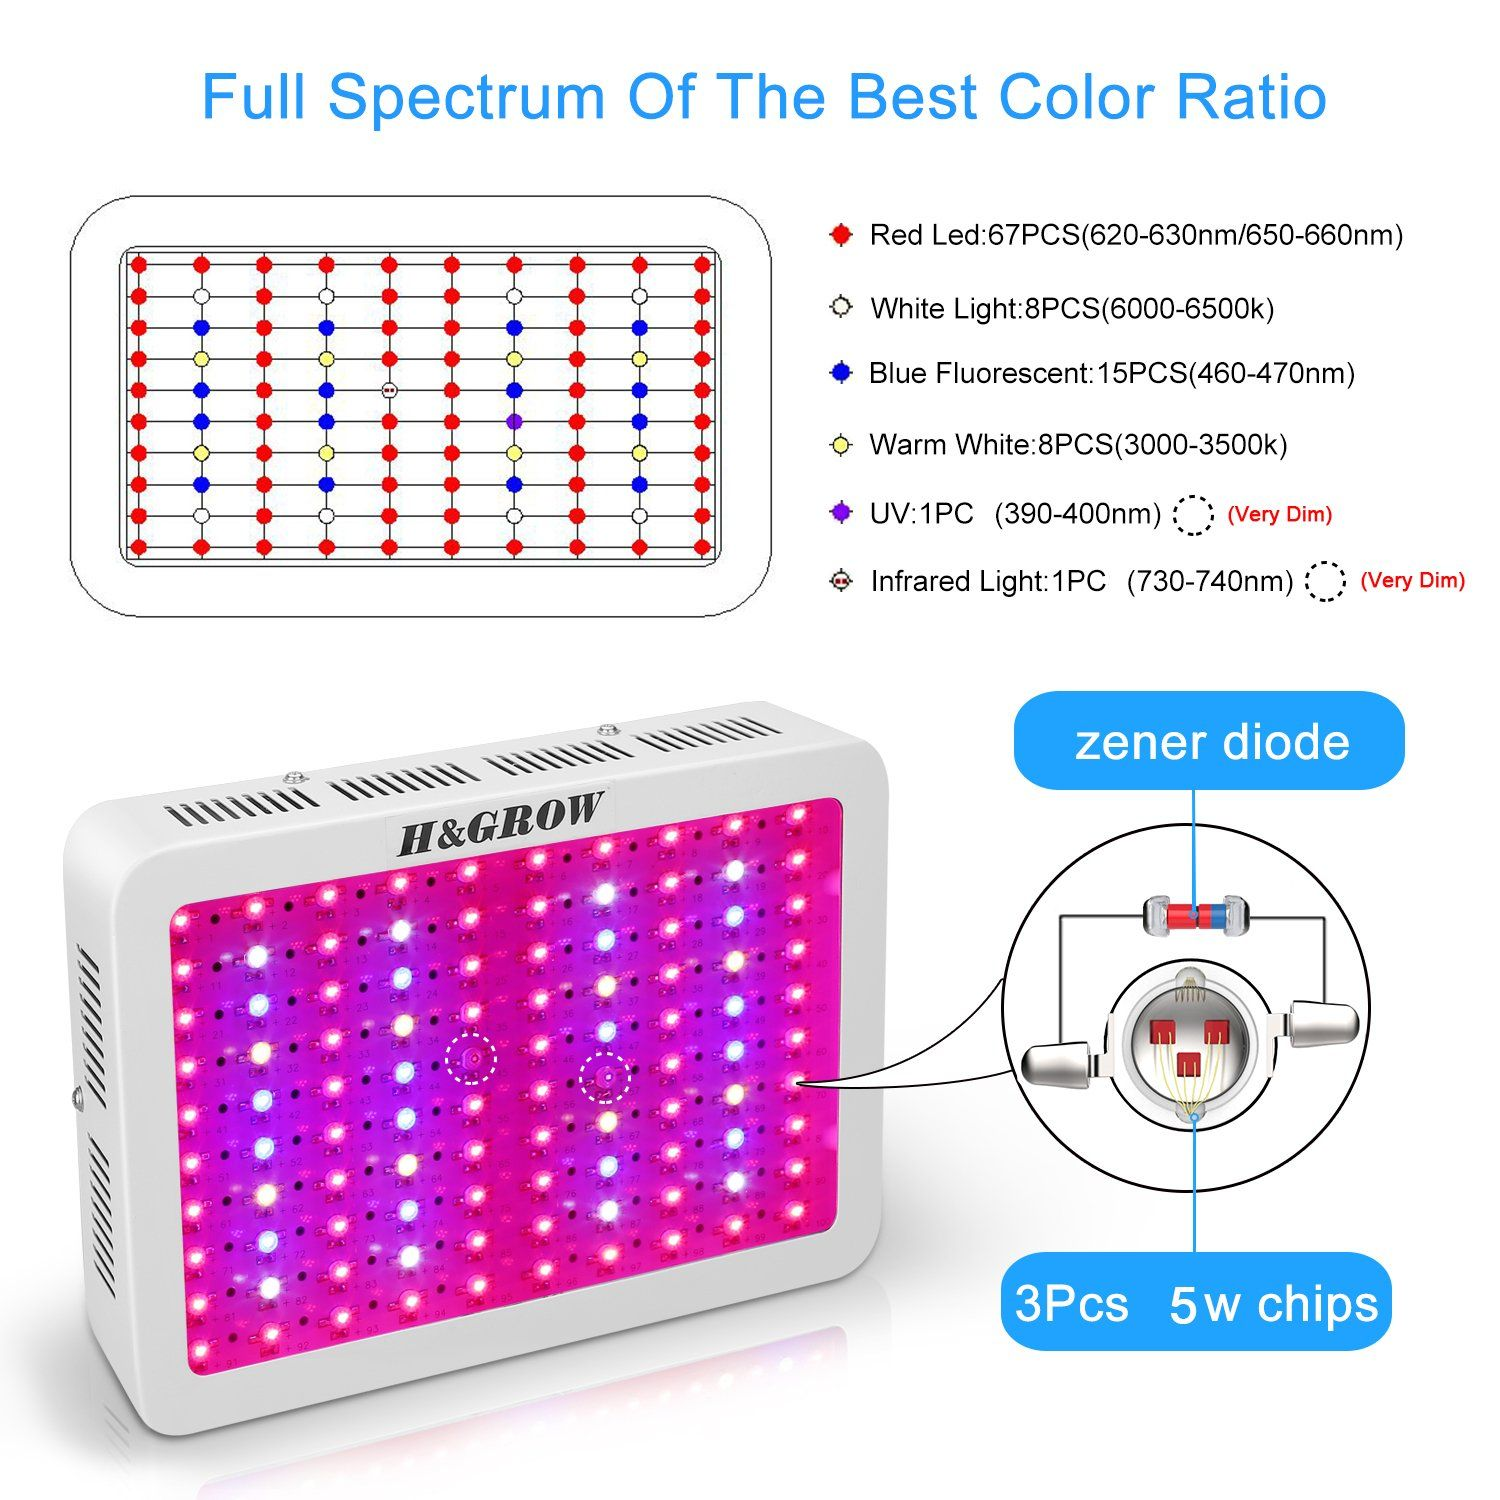 Handgrow Led Grow Light 1000w 3 Chips Full Spectrum Led Grow Lamp With Uvandir For Greenhouse Hydroponic Indoor Plants Veg A Led Grow Lights Grow Lamps Red Led